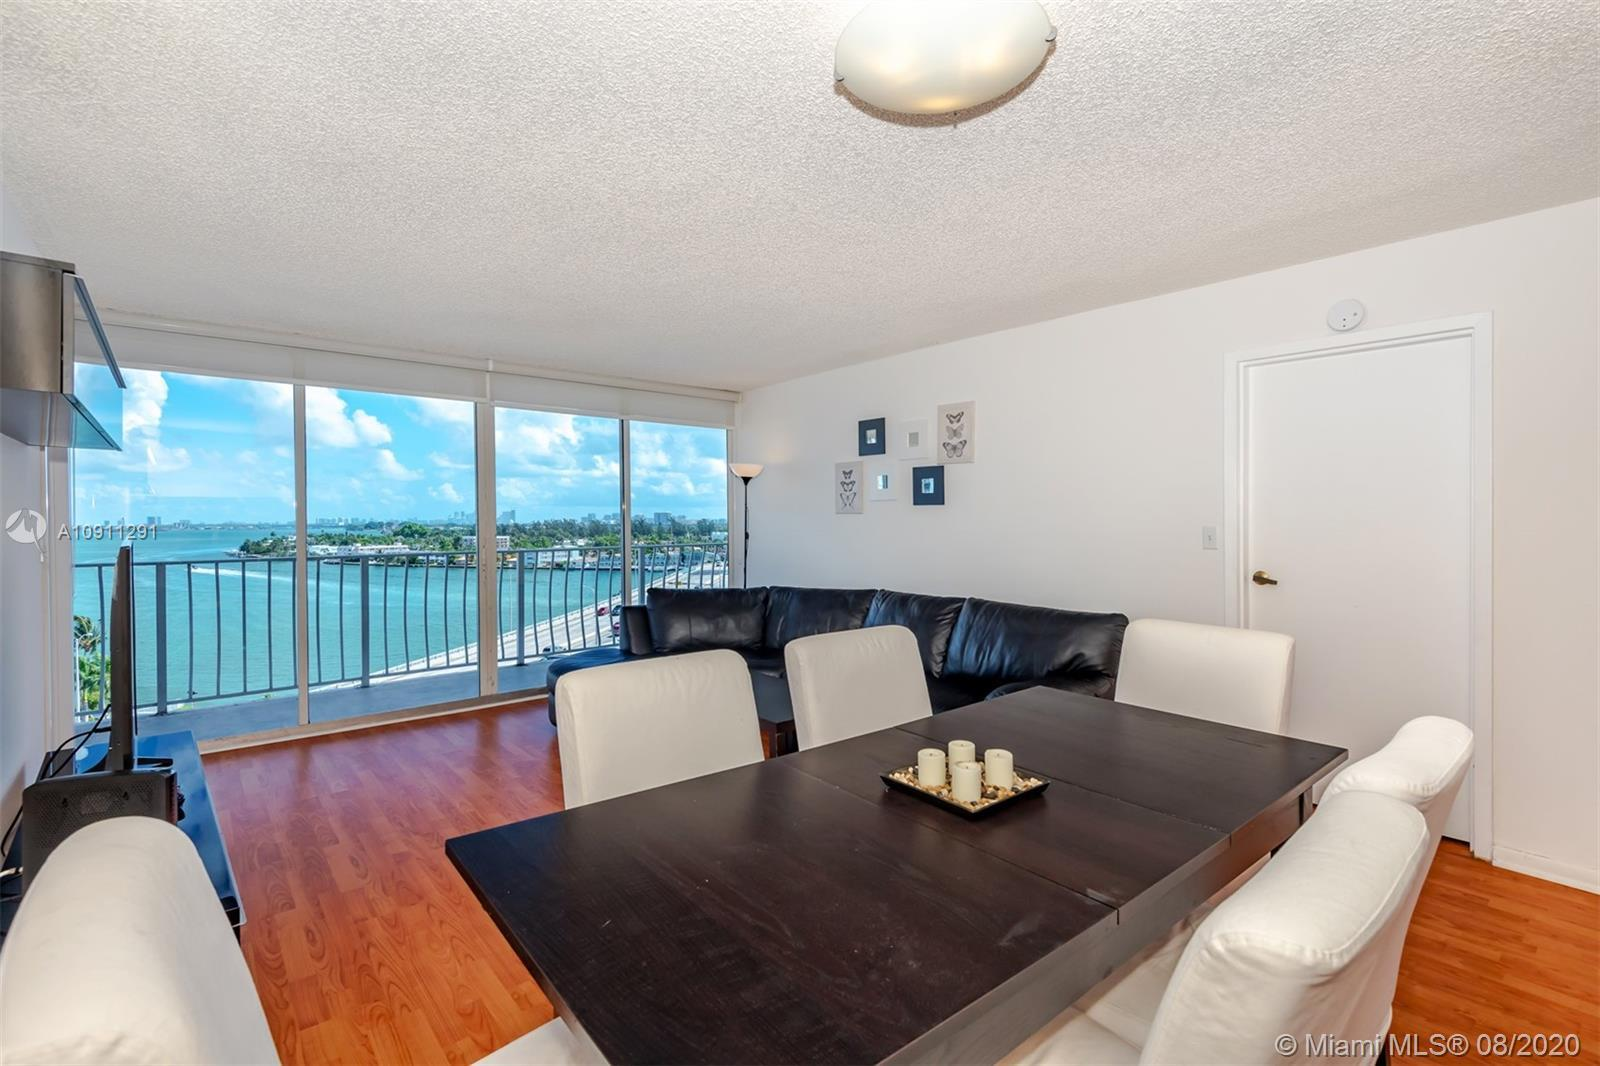 Spectacular 2 bedrooms 2 baths split floor plan with beautiful bay and city views. Located in a wate